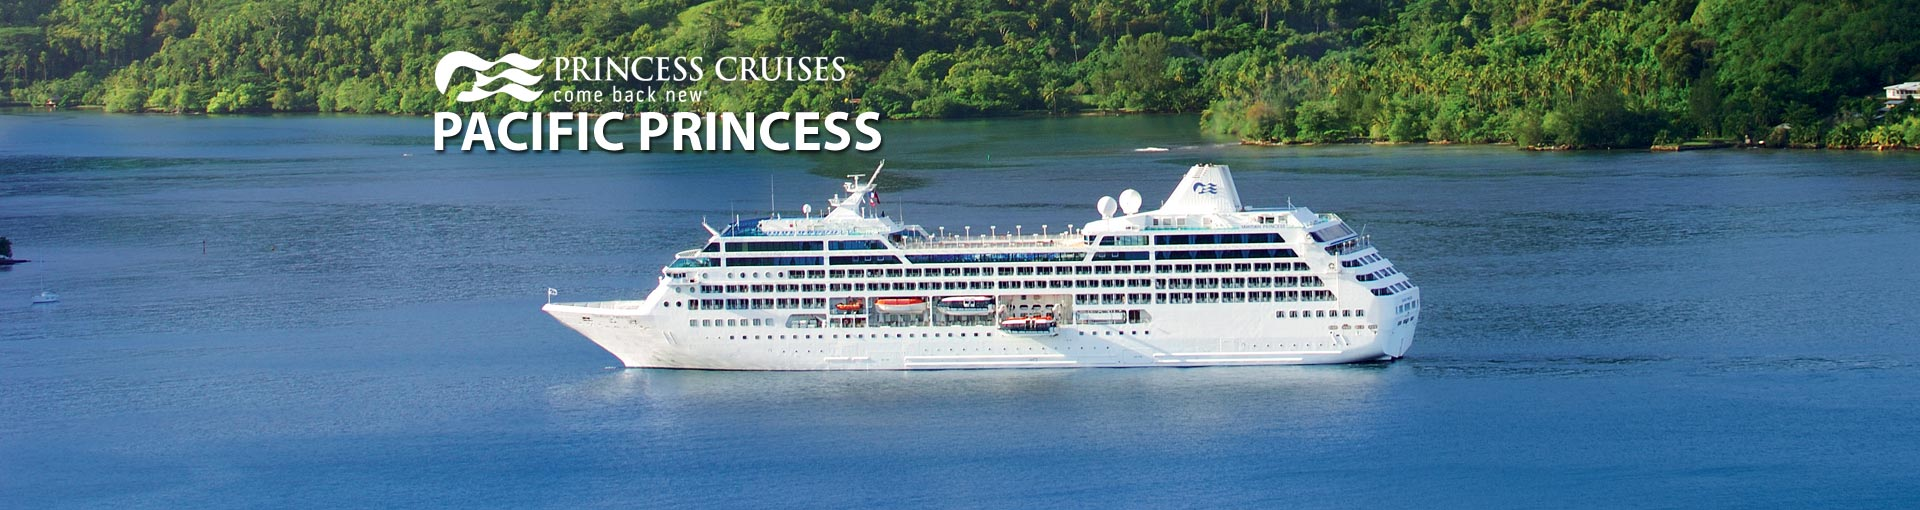 Princess Cruises Pacific Princess cruise ship